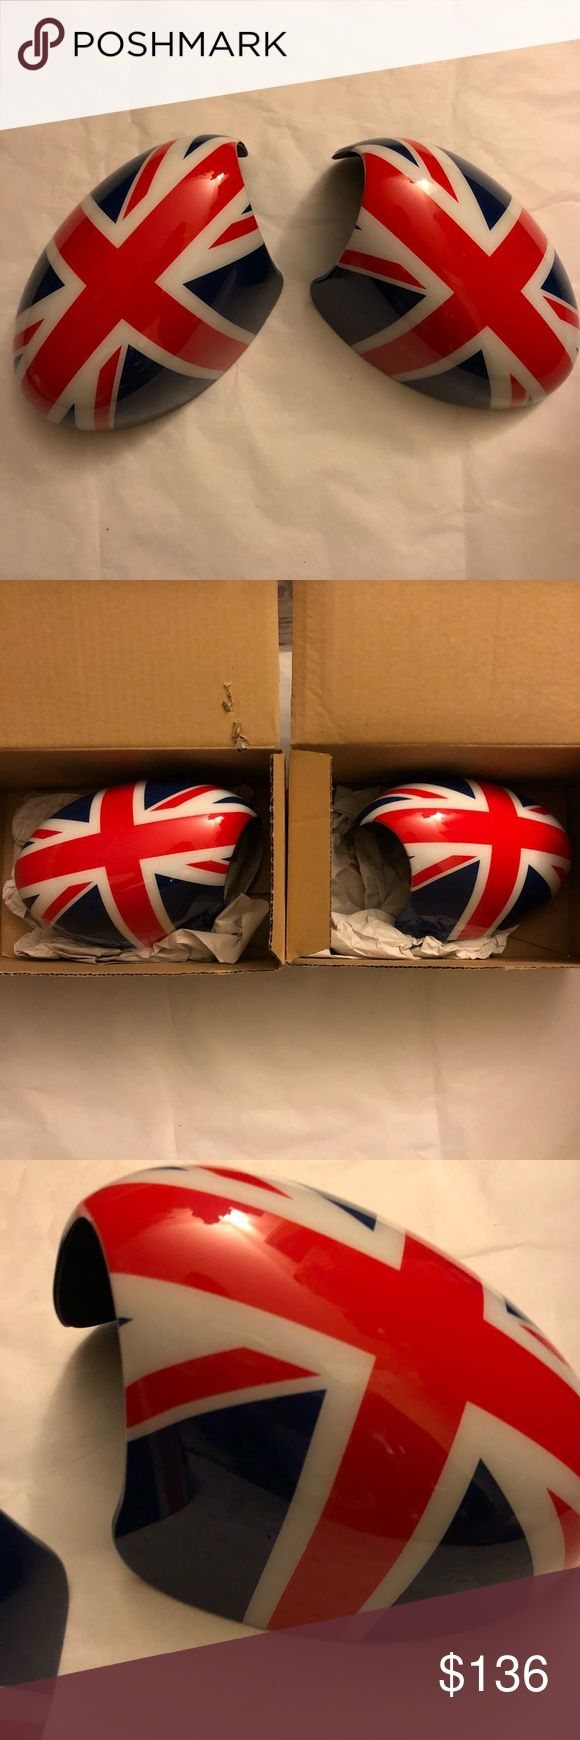 MINI Cooper Union Jack 🇬🇧 Mirror Caps For all MINI Cooper fanatic out there...!!! USED for 3 months: MINI Cooper Union Jack 🇬🇧 Mirror Caps for 2006 MINI Cooper S Convertible R52  The perfect compliment to your union jack roof graphics or a bold way to emphasize the mirror shape.  Set of two. (Left and Right) Condition: Very Good (still looks new)  P.S.  Please see detailed pictures and written descriptions... so check them carefully. Please pay particular attention to the sizes and…